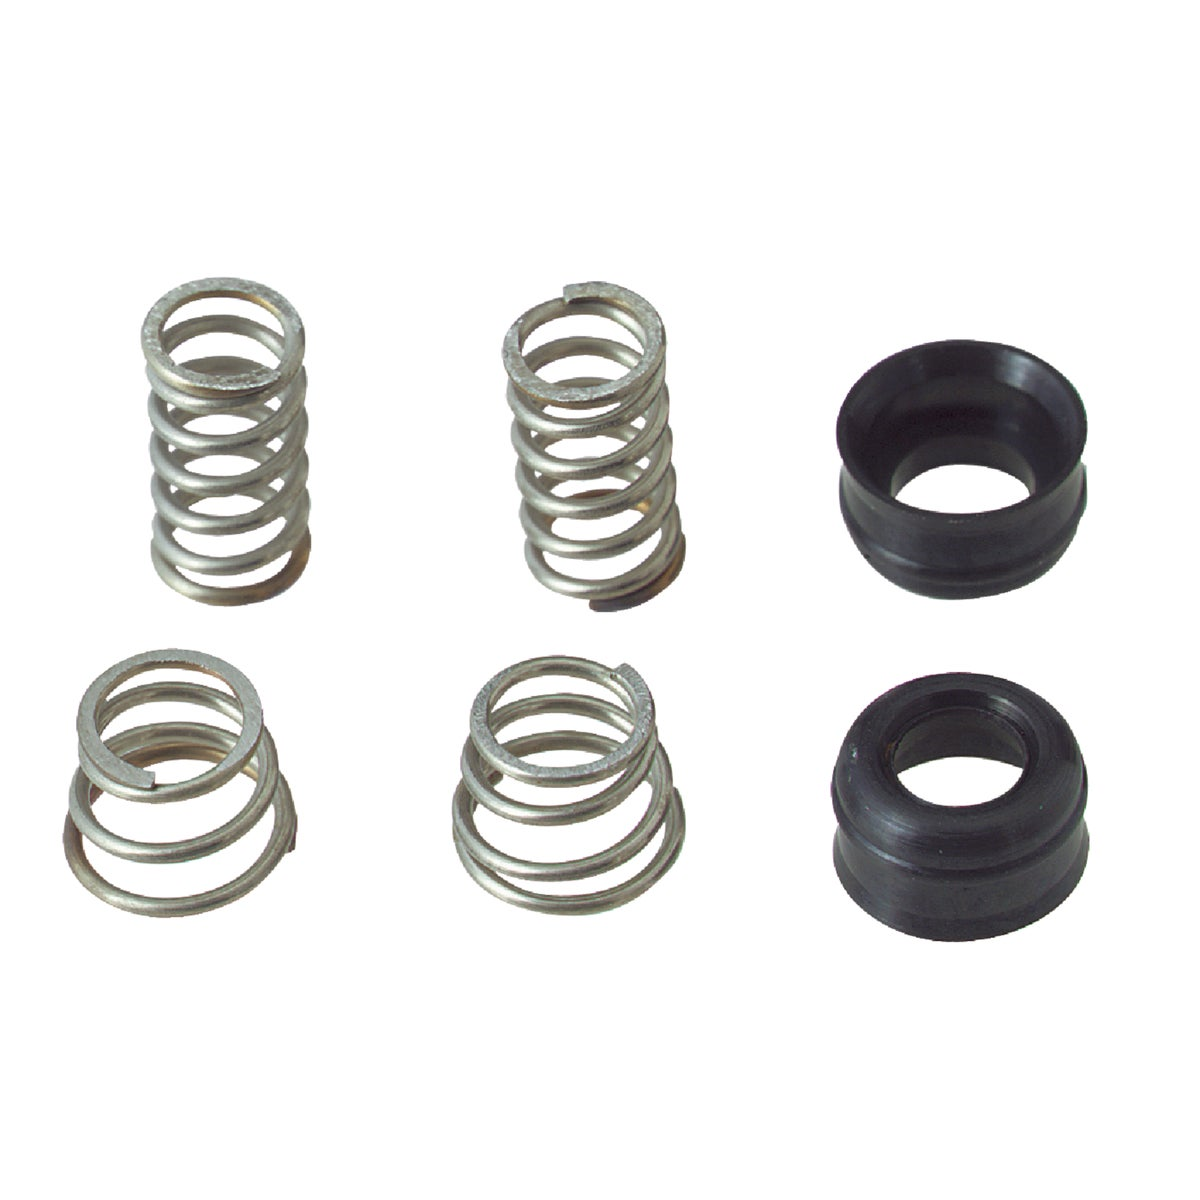 Danco 88050 Seats and Springs for Delta/Peerless Faucets